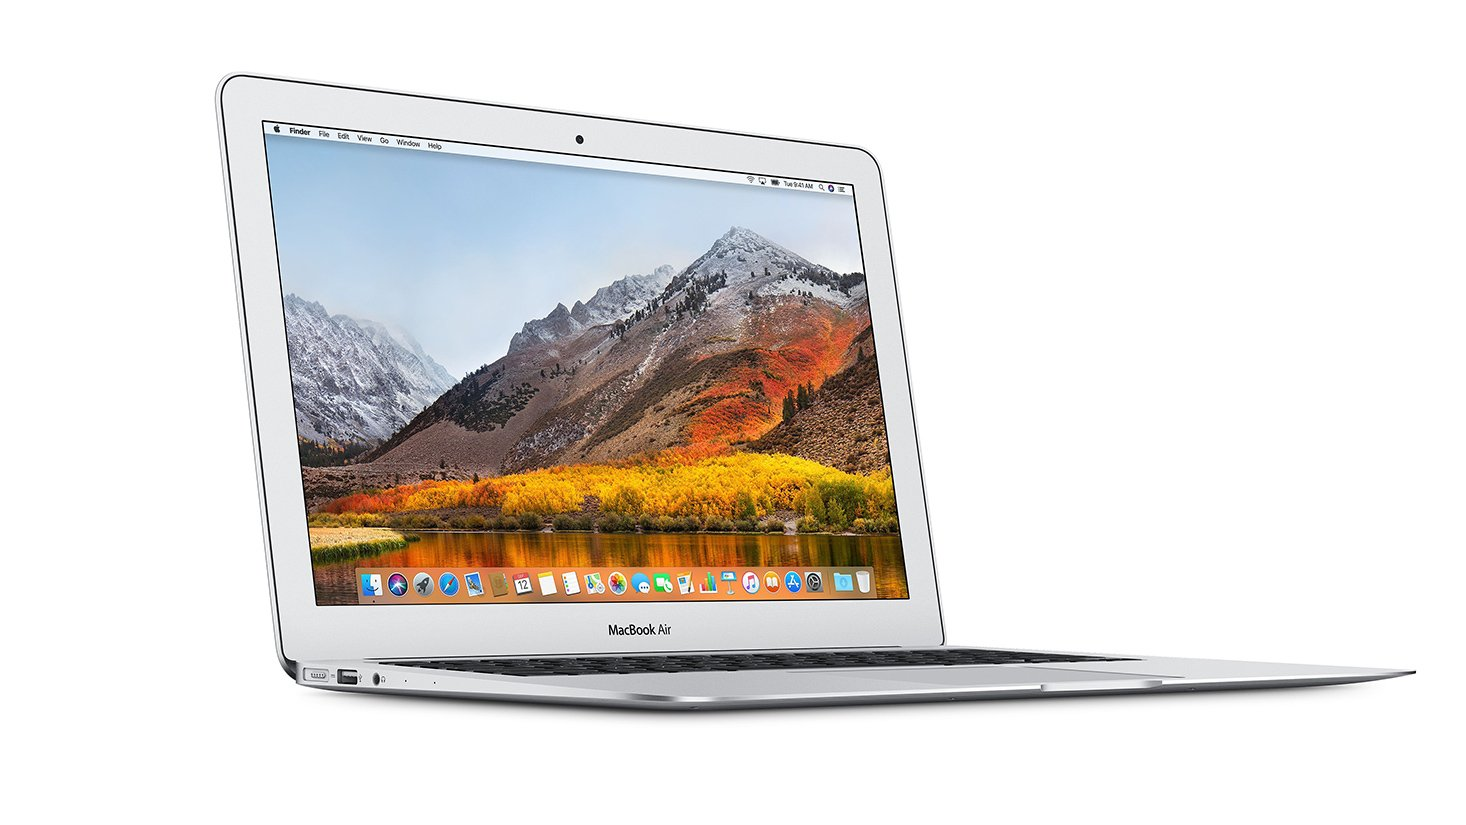 promo code 8fe10 1c9a3 Apple MacBook Air review  Is this the end of the line for MacBook Air     Expert Reviews